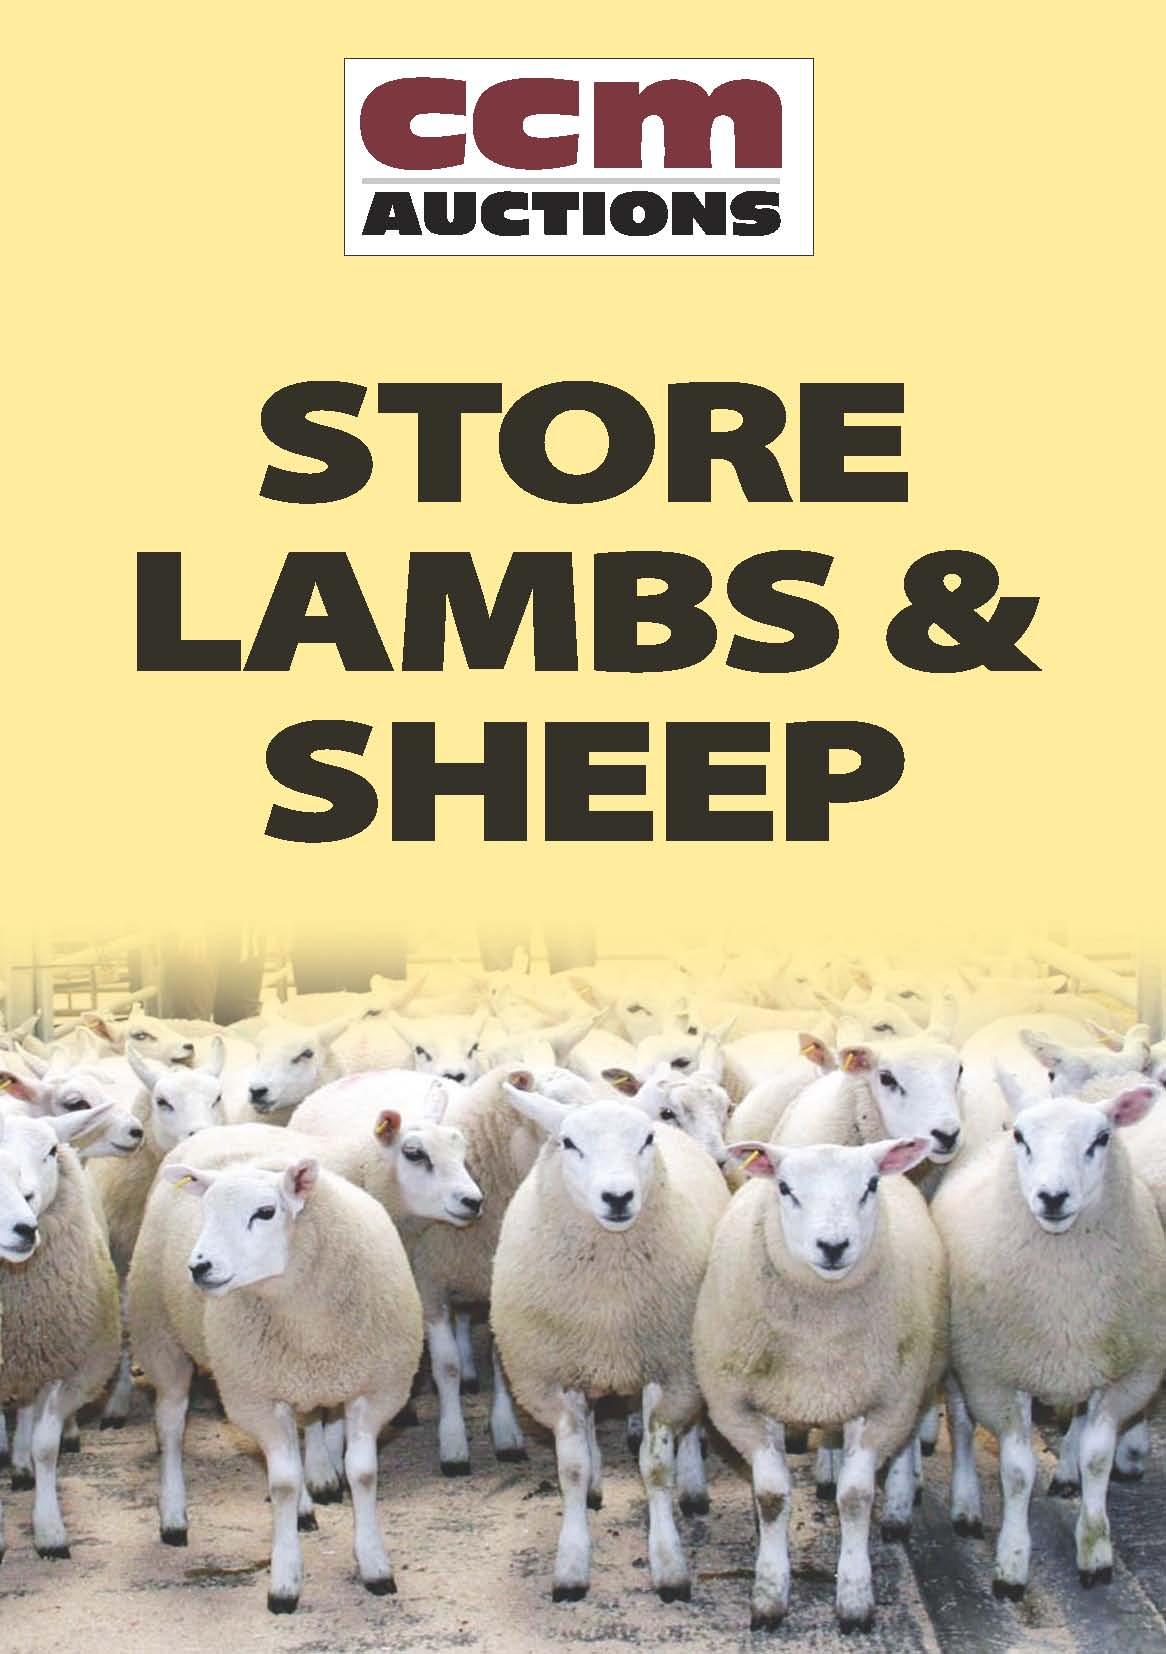 STORE LAMBS - WEDNESDAY 23RD SEPTEMBER 2015